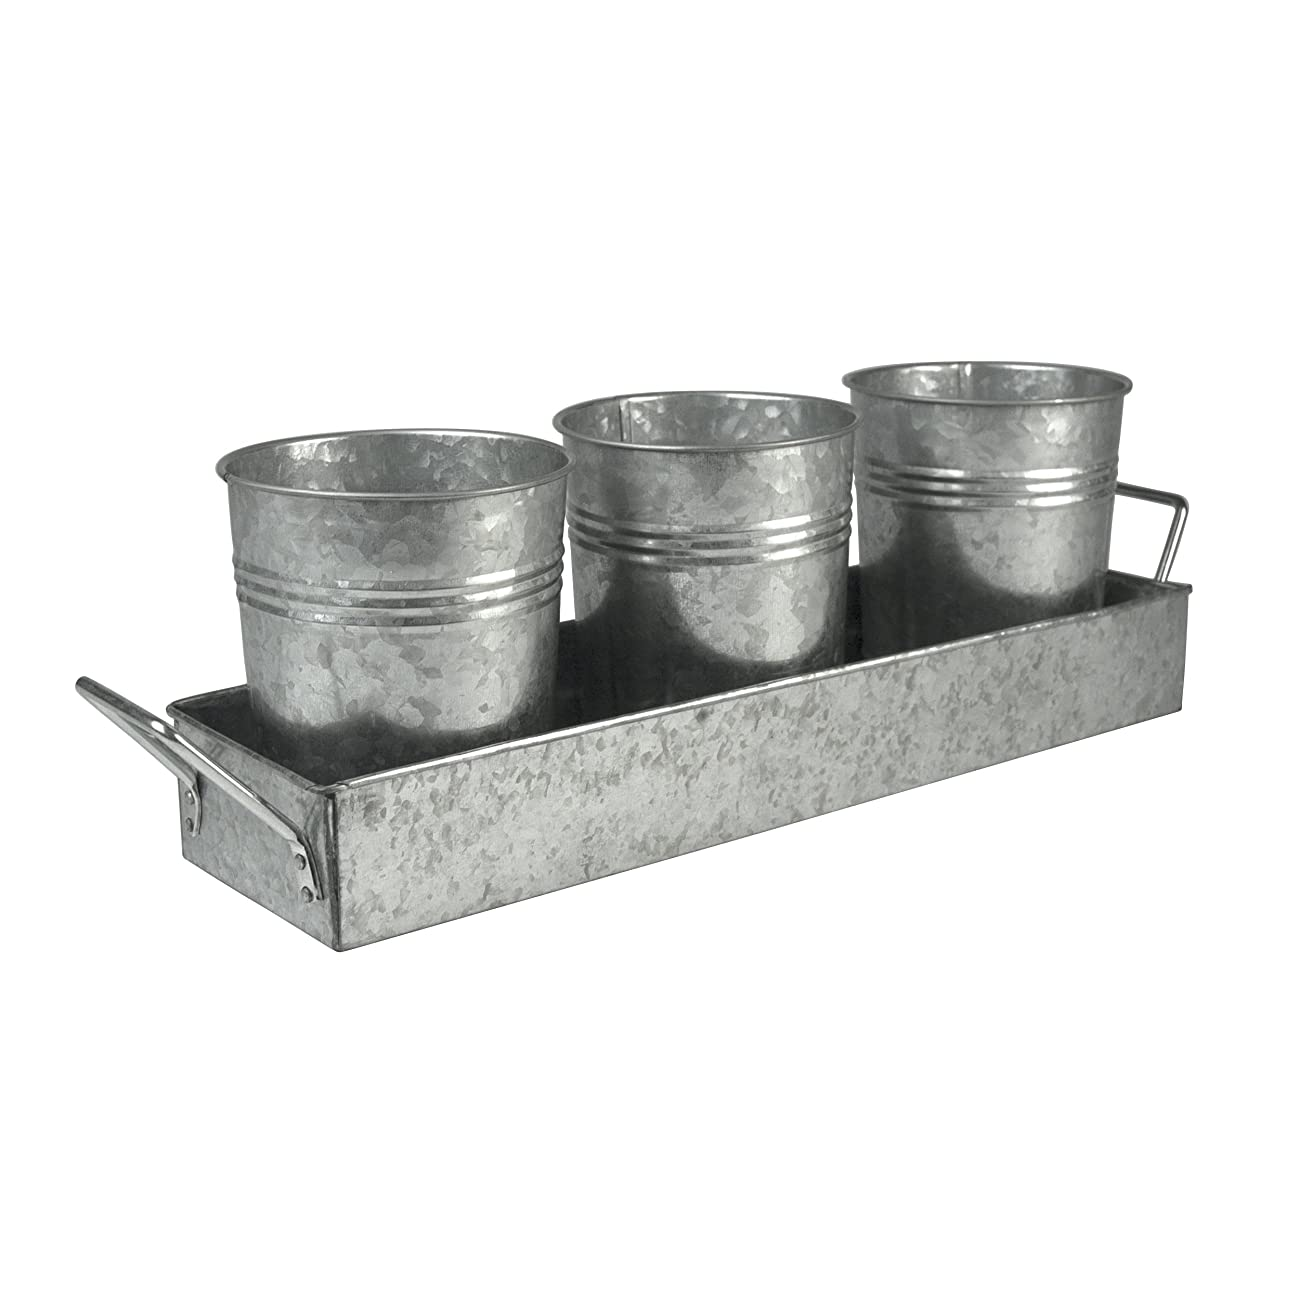 Oasis Picnic Caddy & Planter Set, Galvanized 0